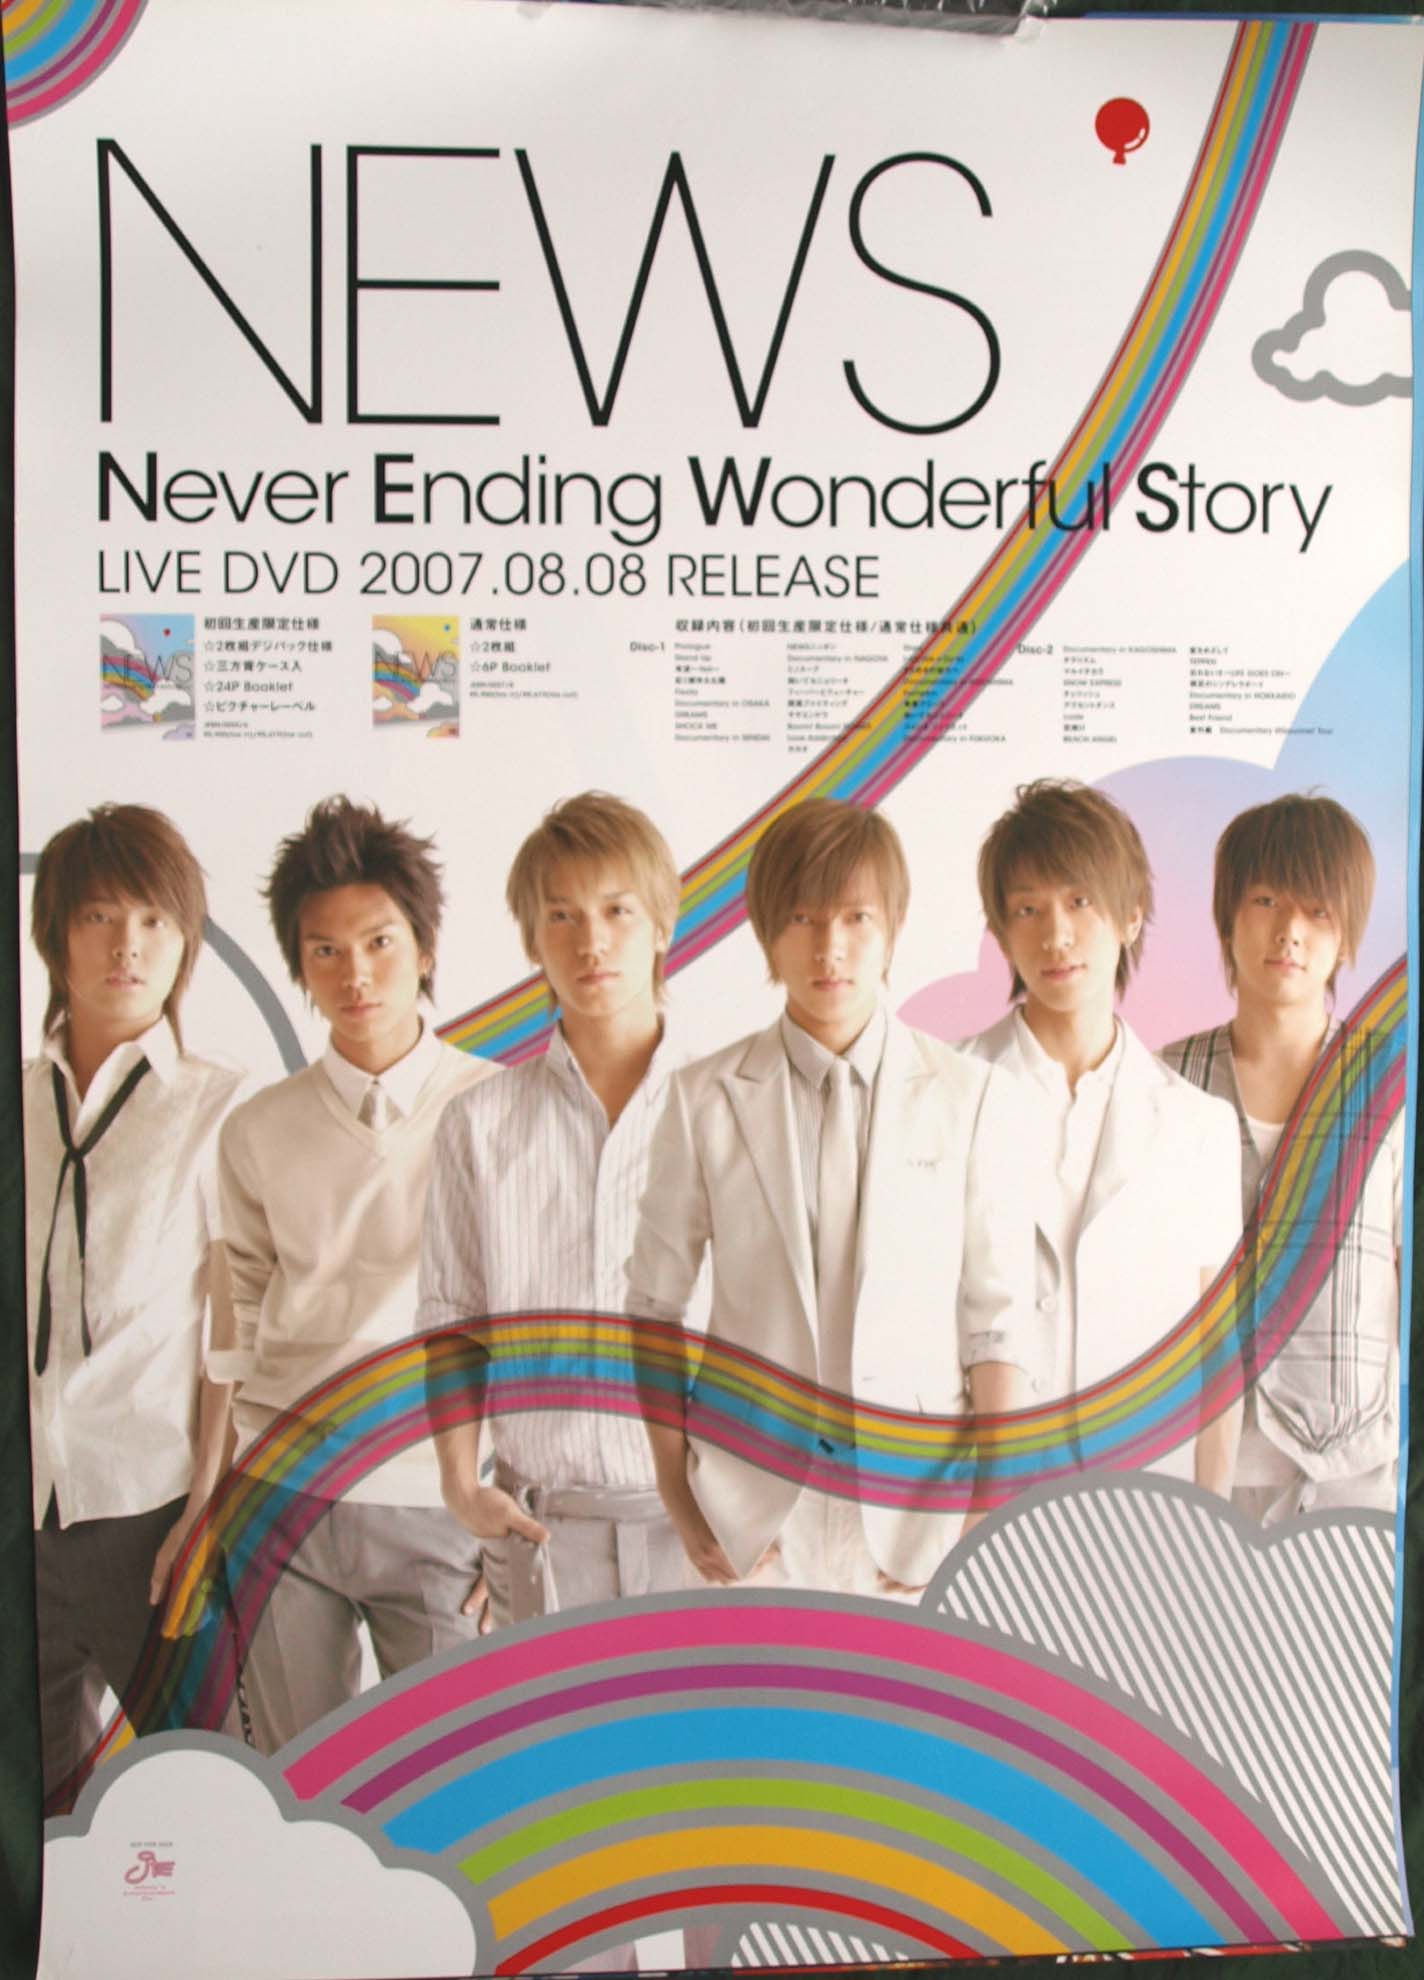 NEWS 「Never Ending Wonderful Story」のポスター